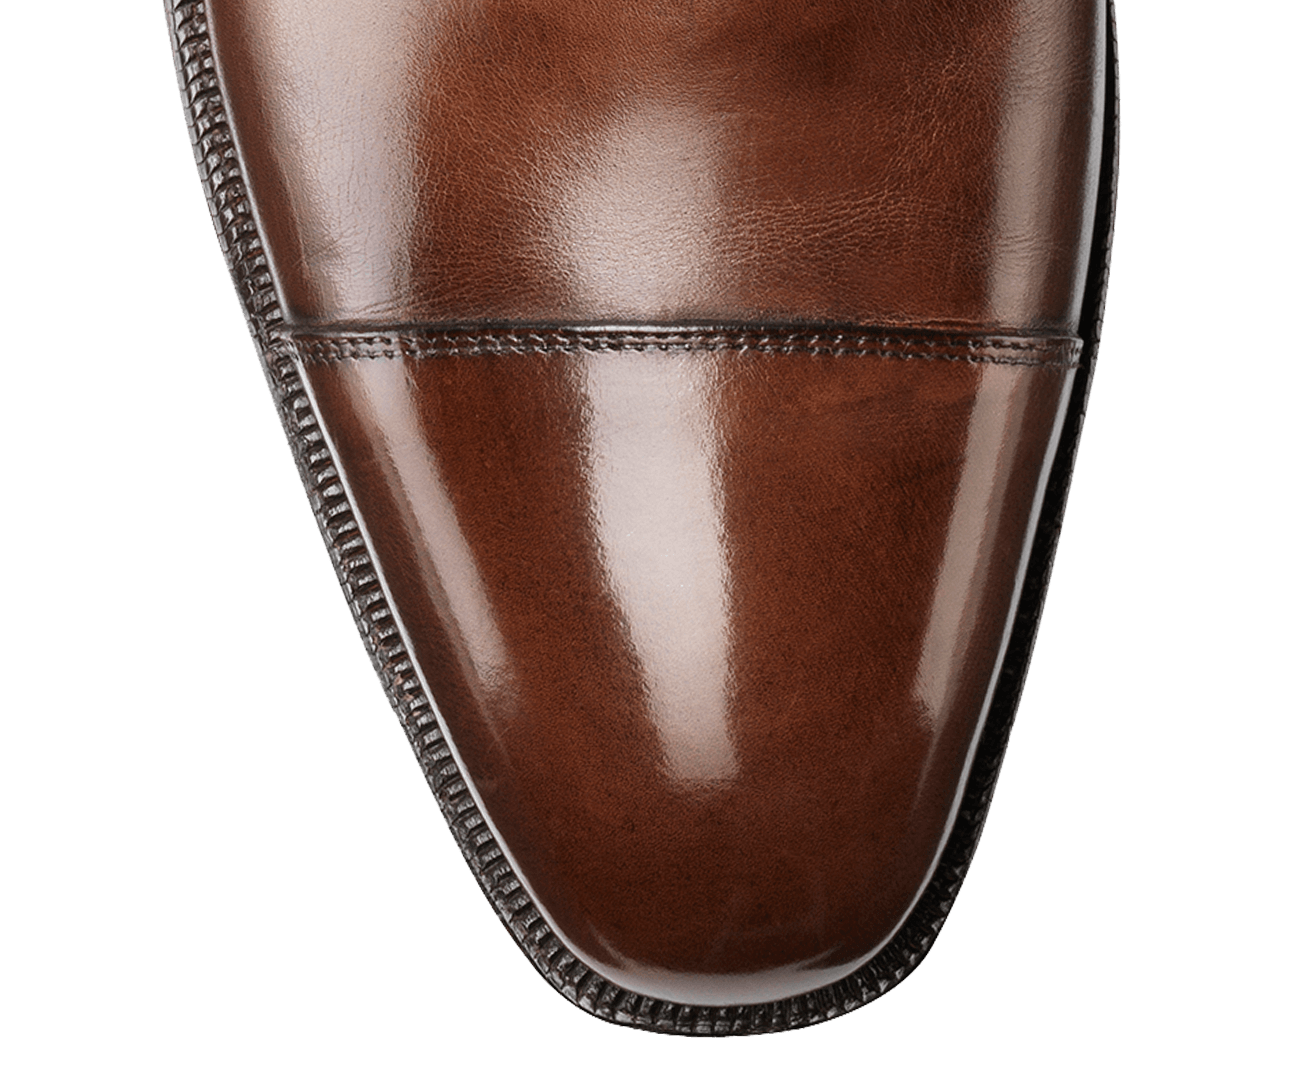 Audley Dark Brown Antique Calf